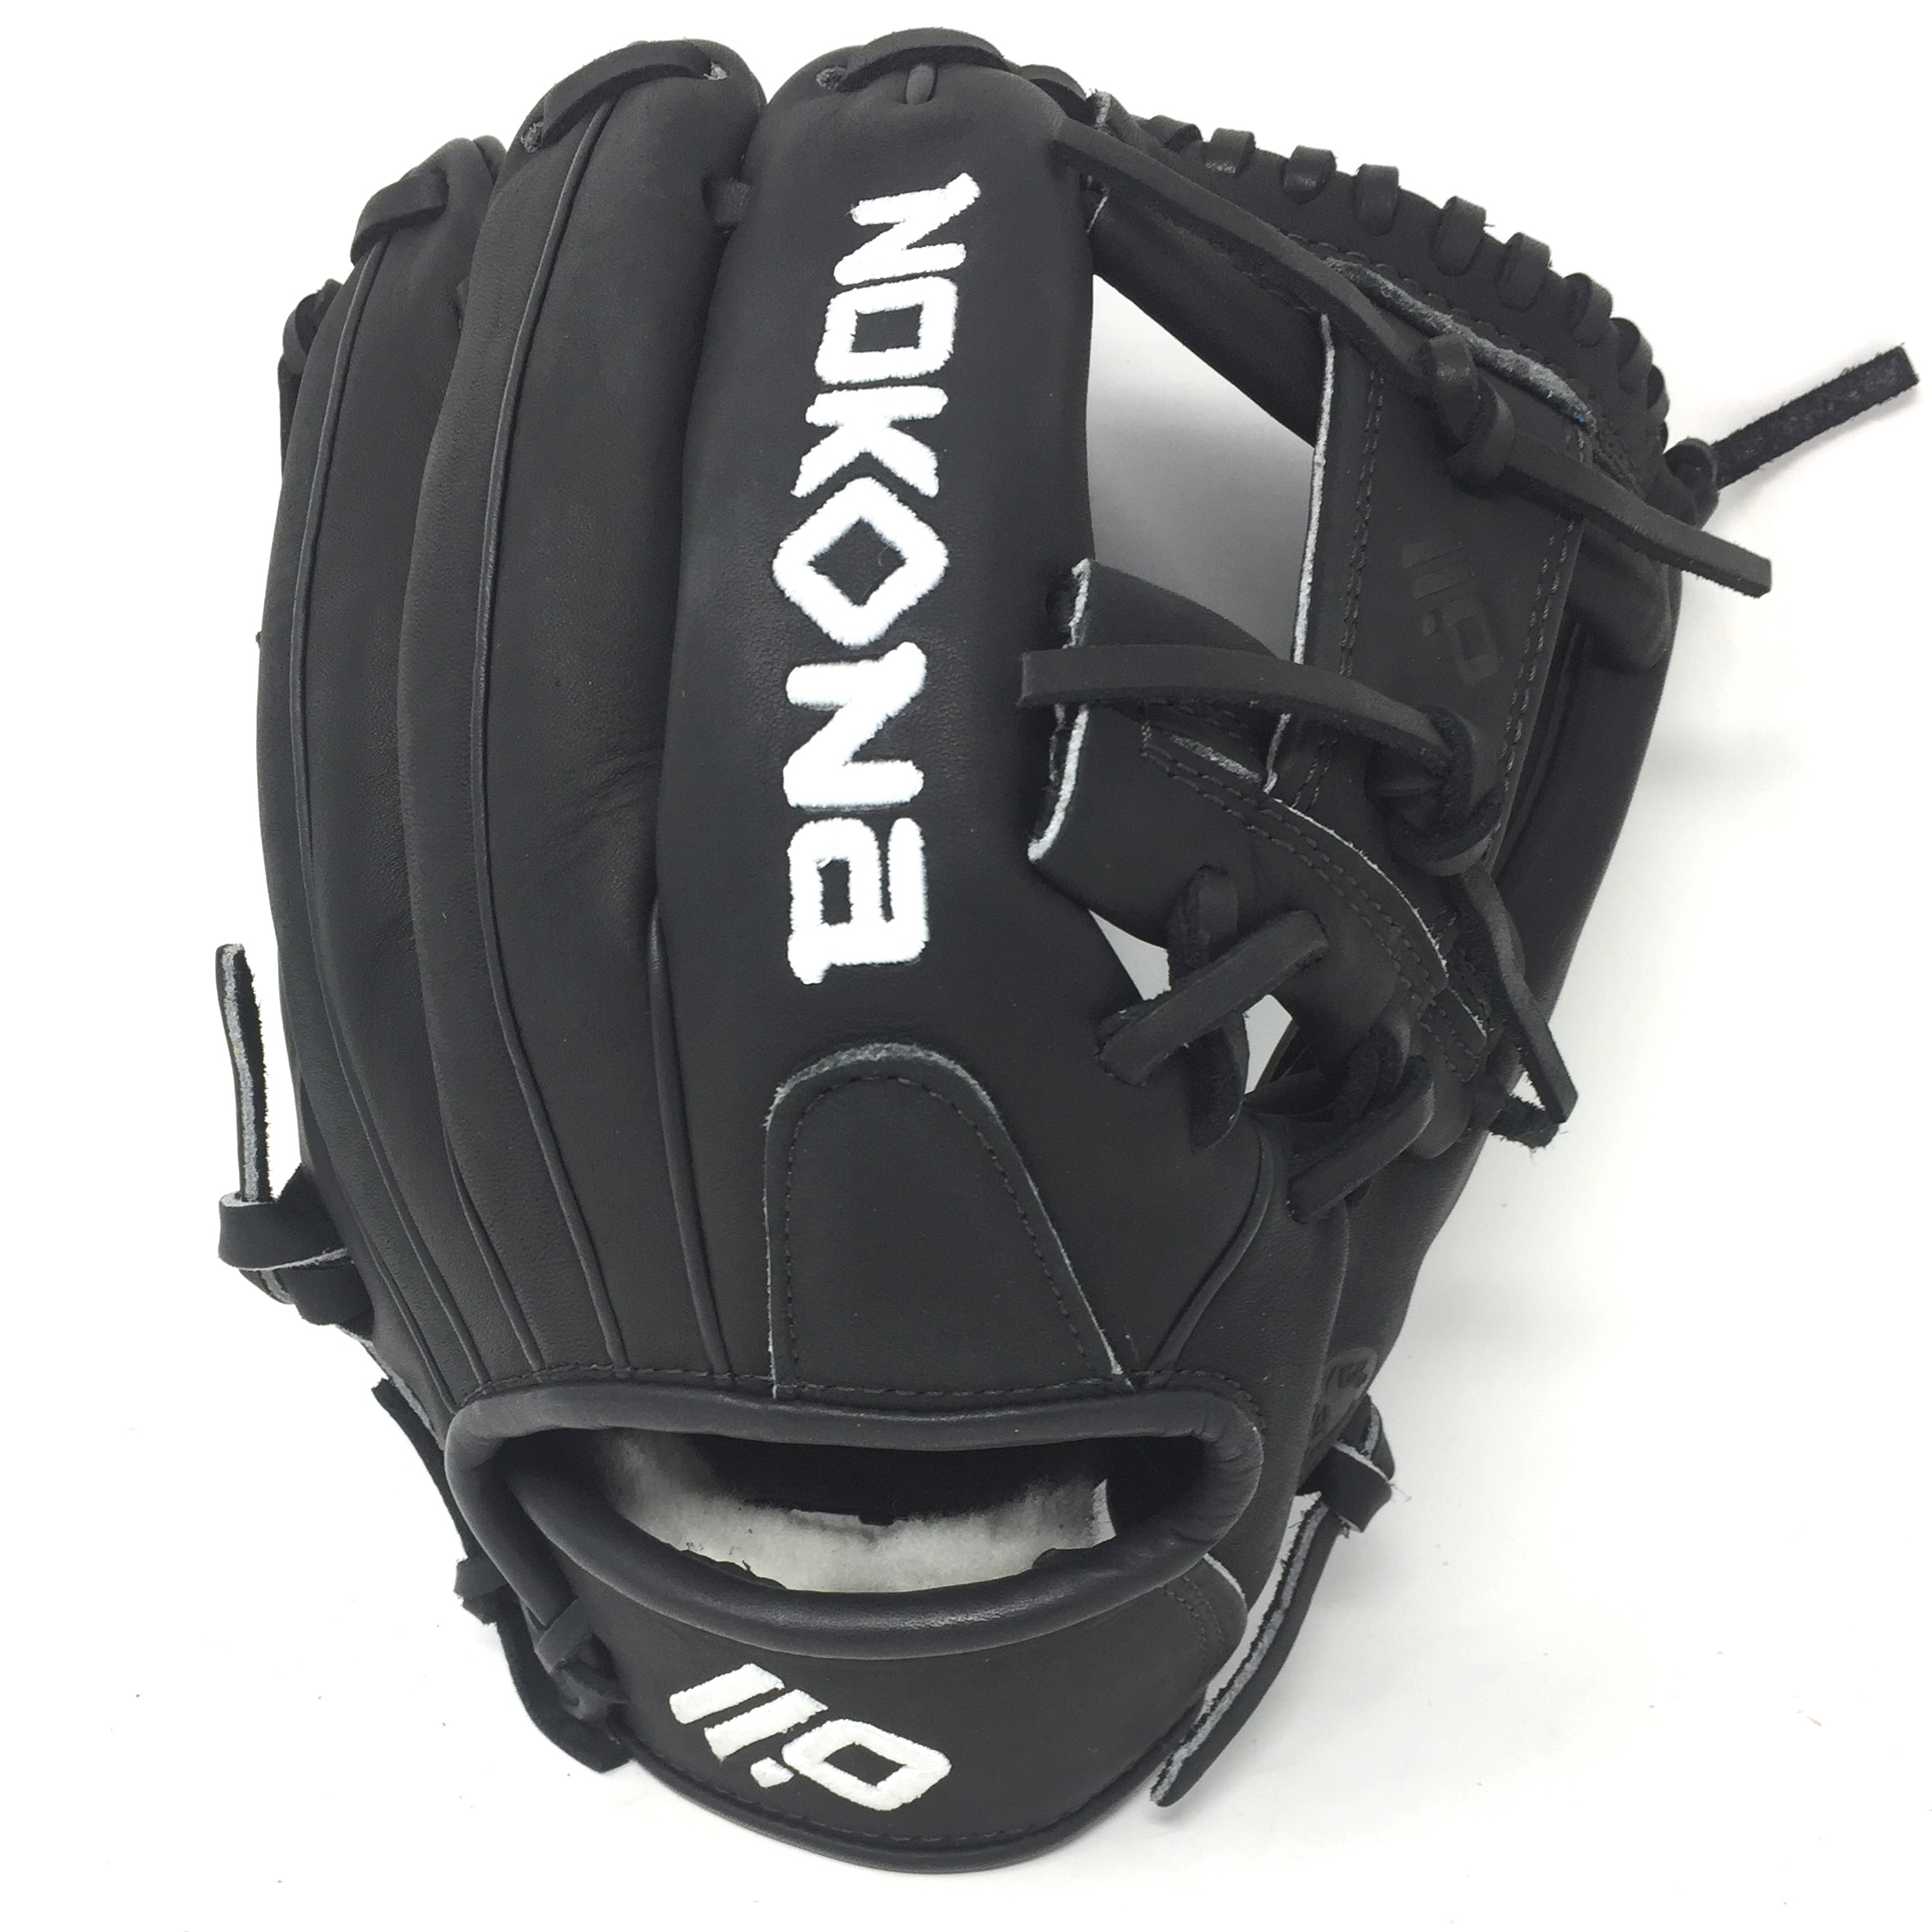 Nokona's Nokona's all new Supersoft Series gloves are made from premium top-grain steerhide leather and feature eye catching colors and patterns. The Supersoft glove has a supple and game ready feel yet retains its structure and durability through the wears and tears of the game.